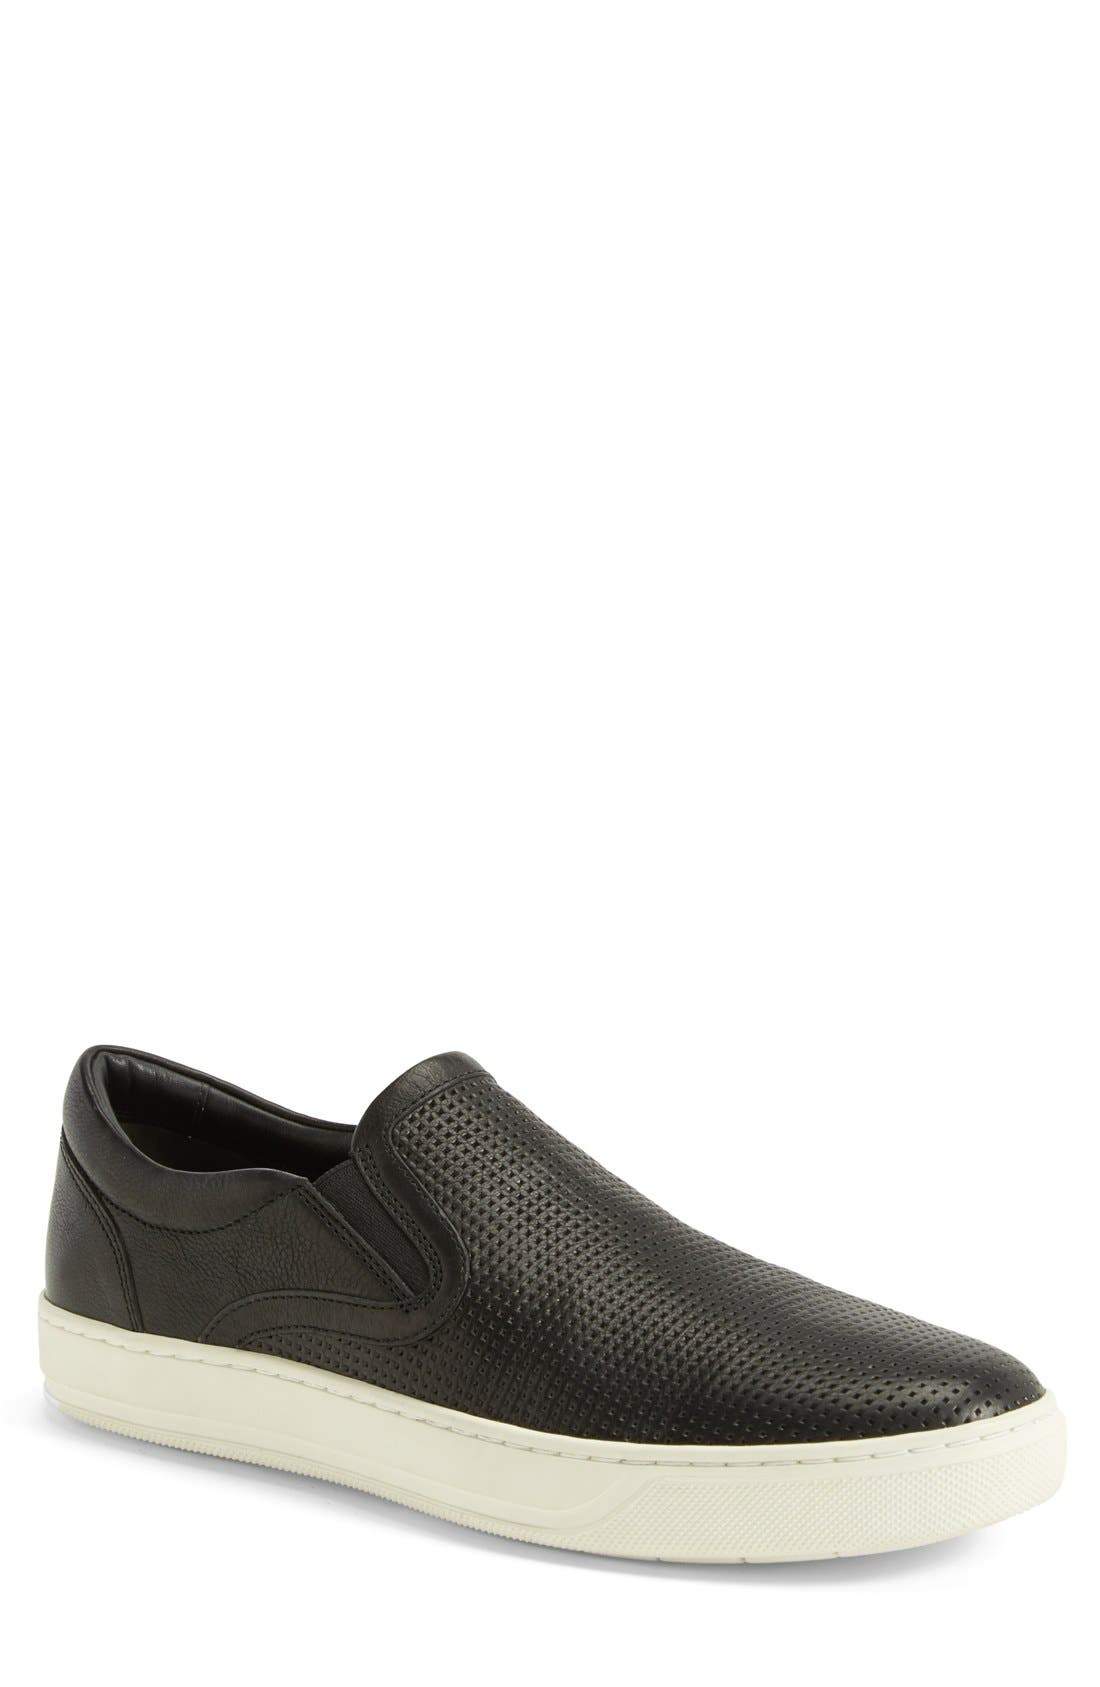 'Ace' Slip-On,                         Main,                         color, 002